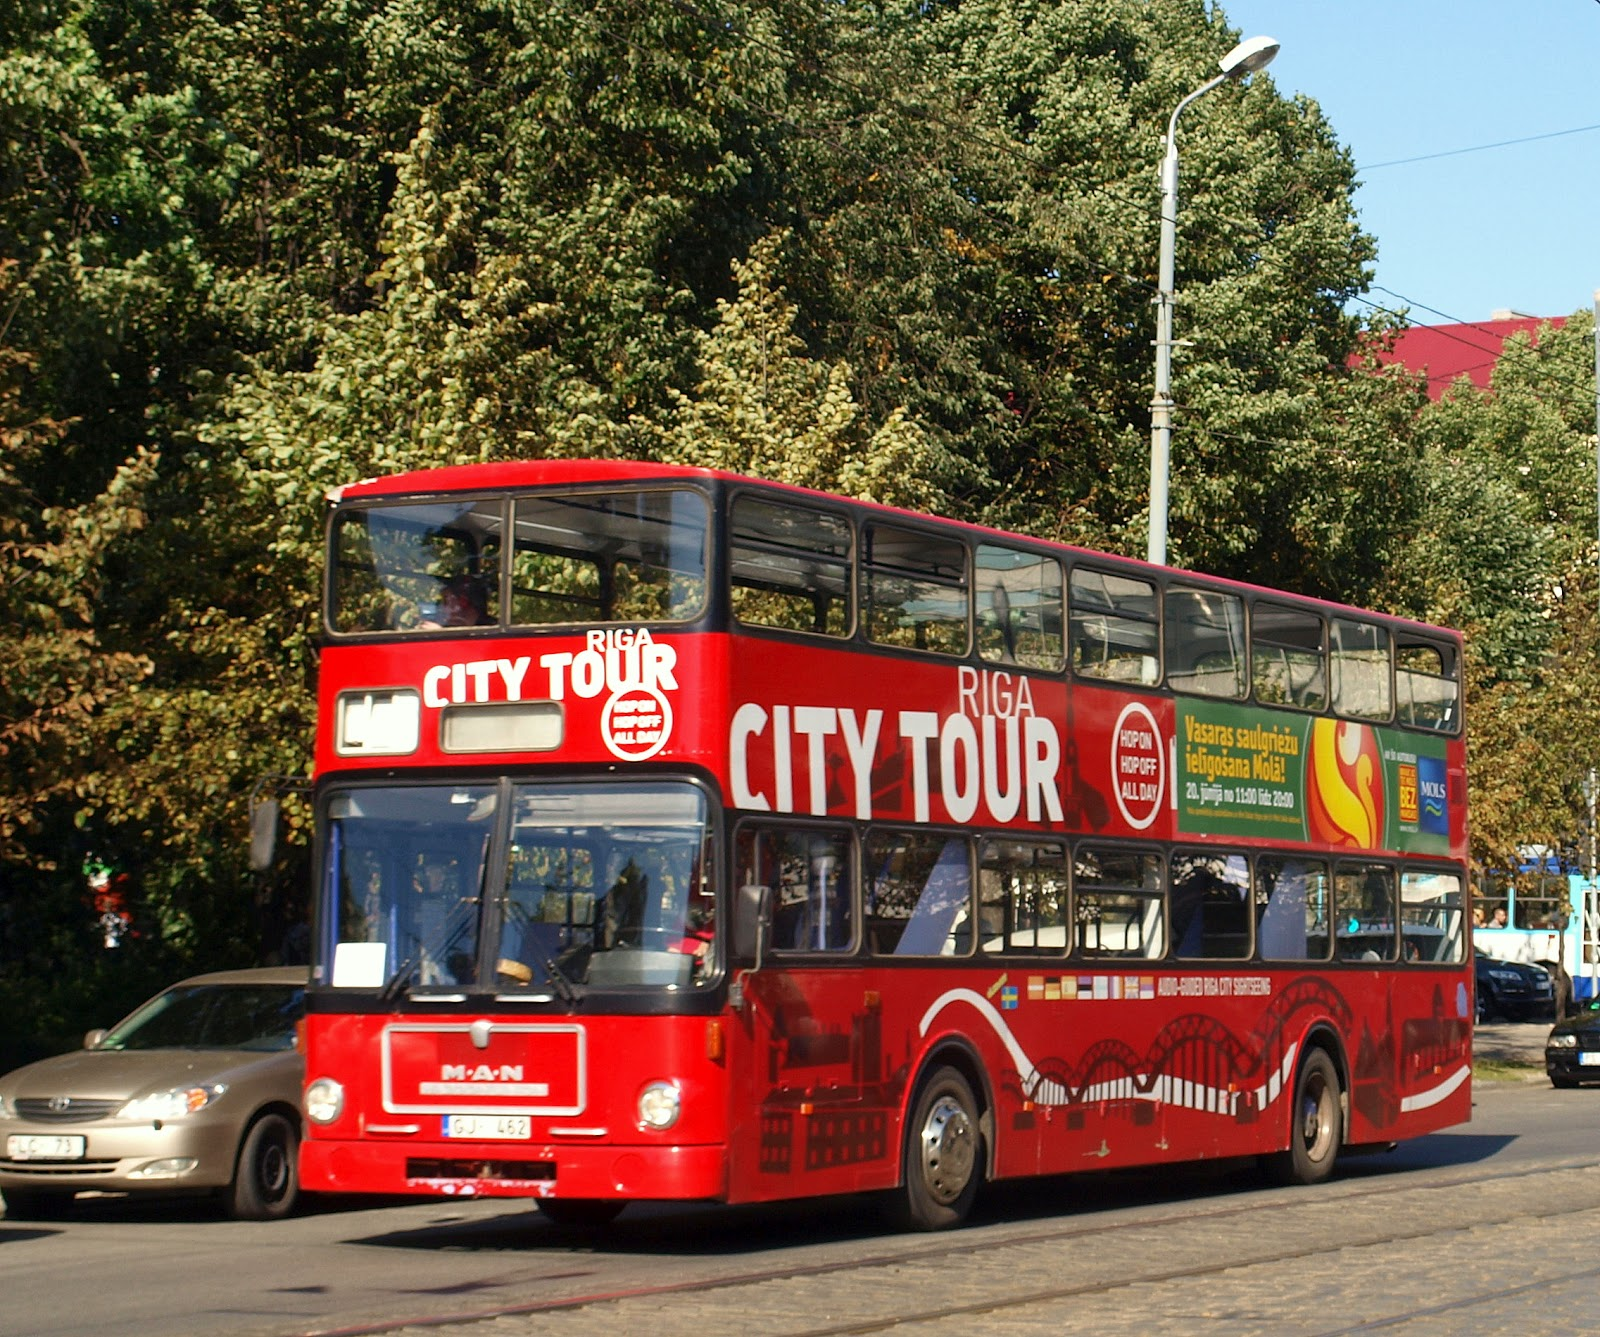 Riga+city+tour+bus+%28alt,+9.2009%29